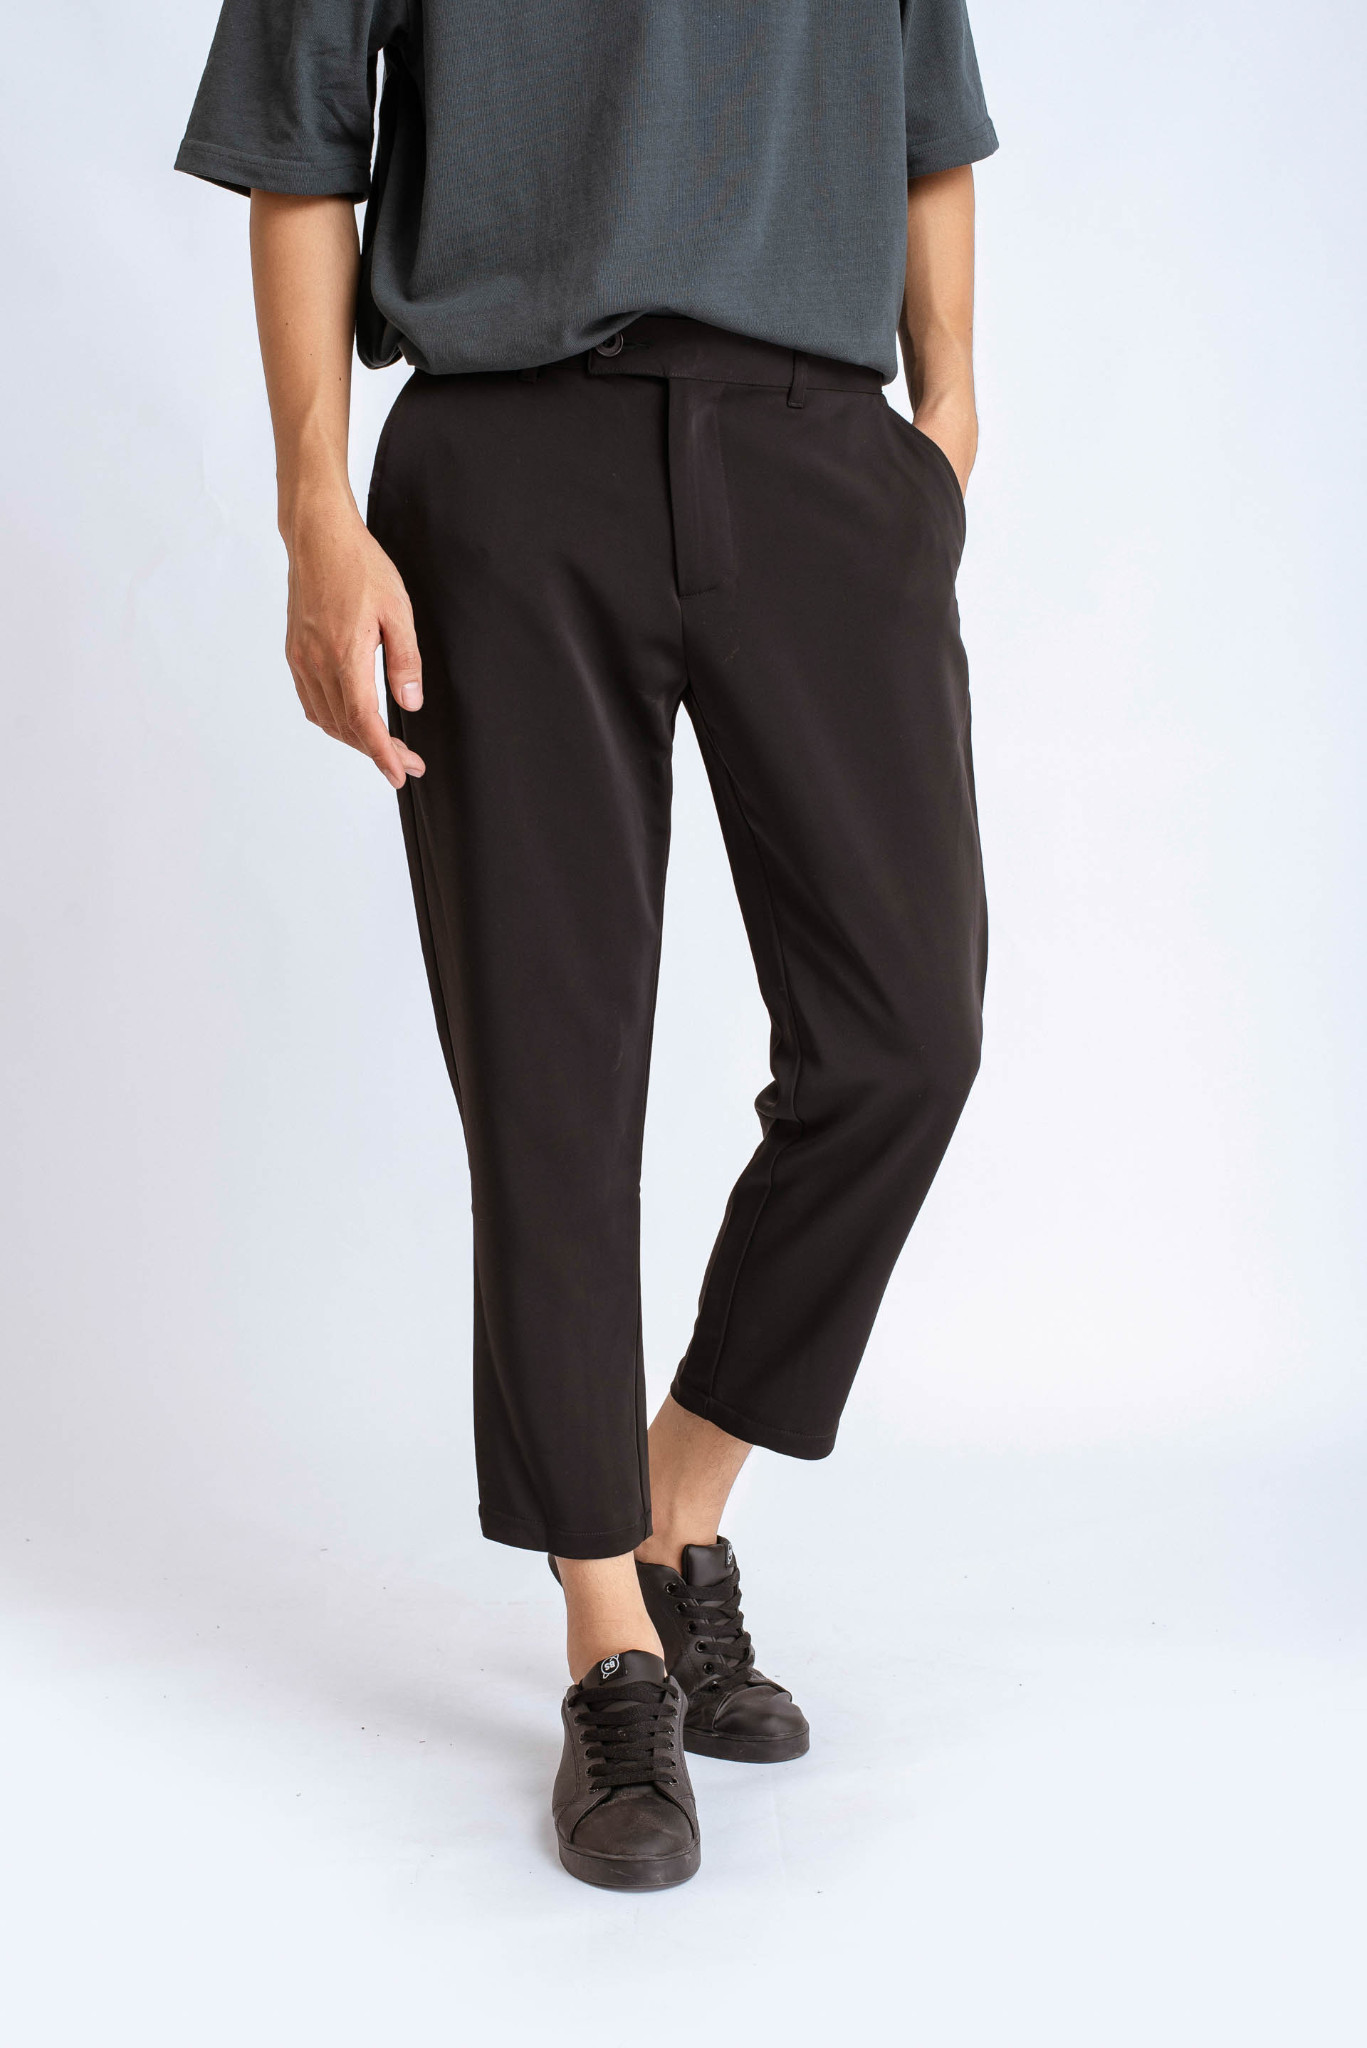 QUẦN DÀI NAM CROP PANTS ORTHER STRAIGHT